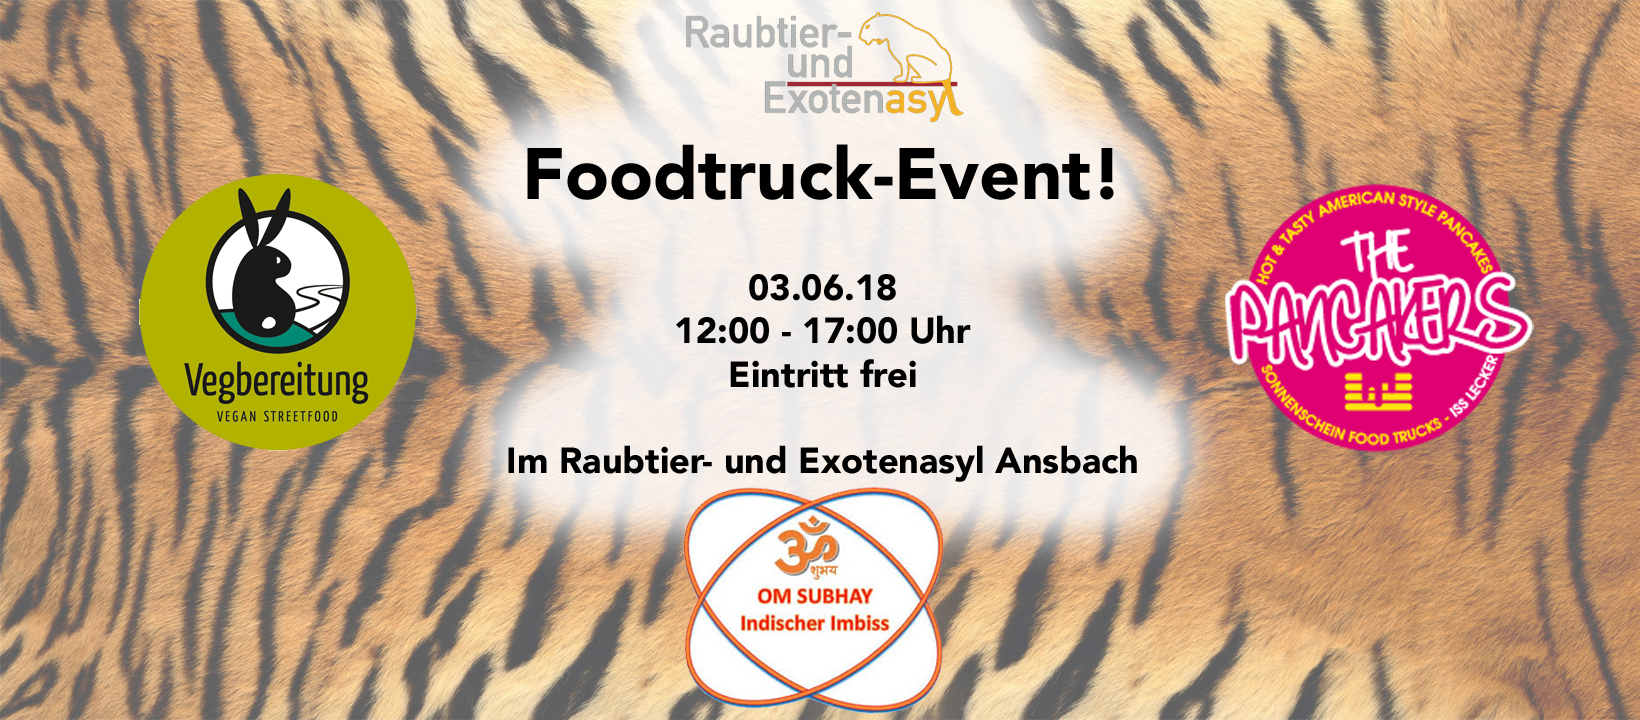 Foodtruck-Event-Fyler